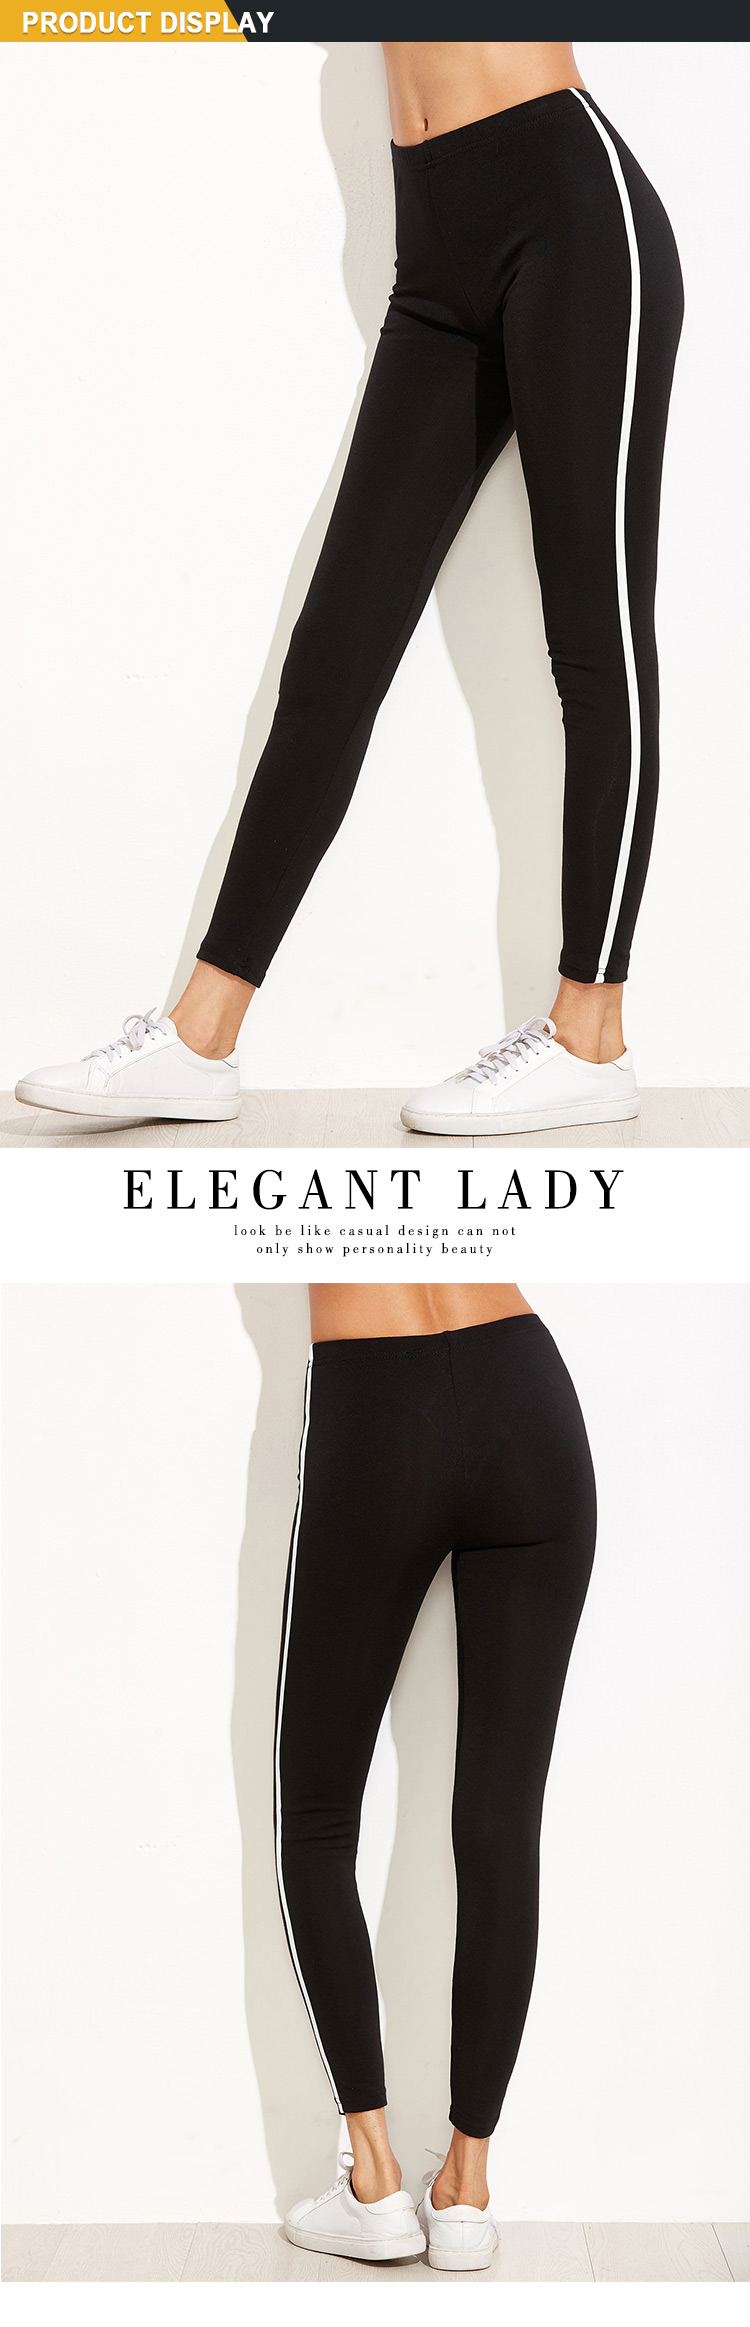 Fashion wholesale custom jogging fitness tights high waist sport leggings for sexy girls